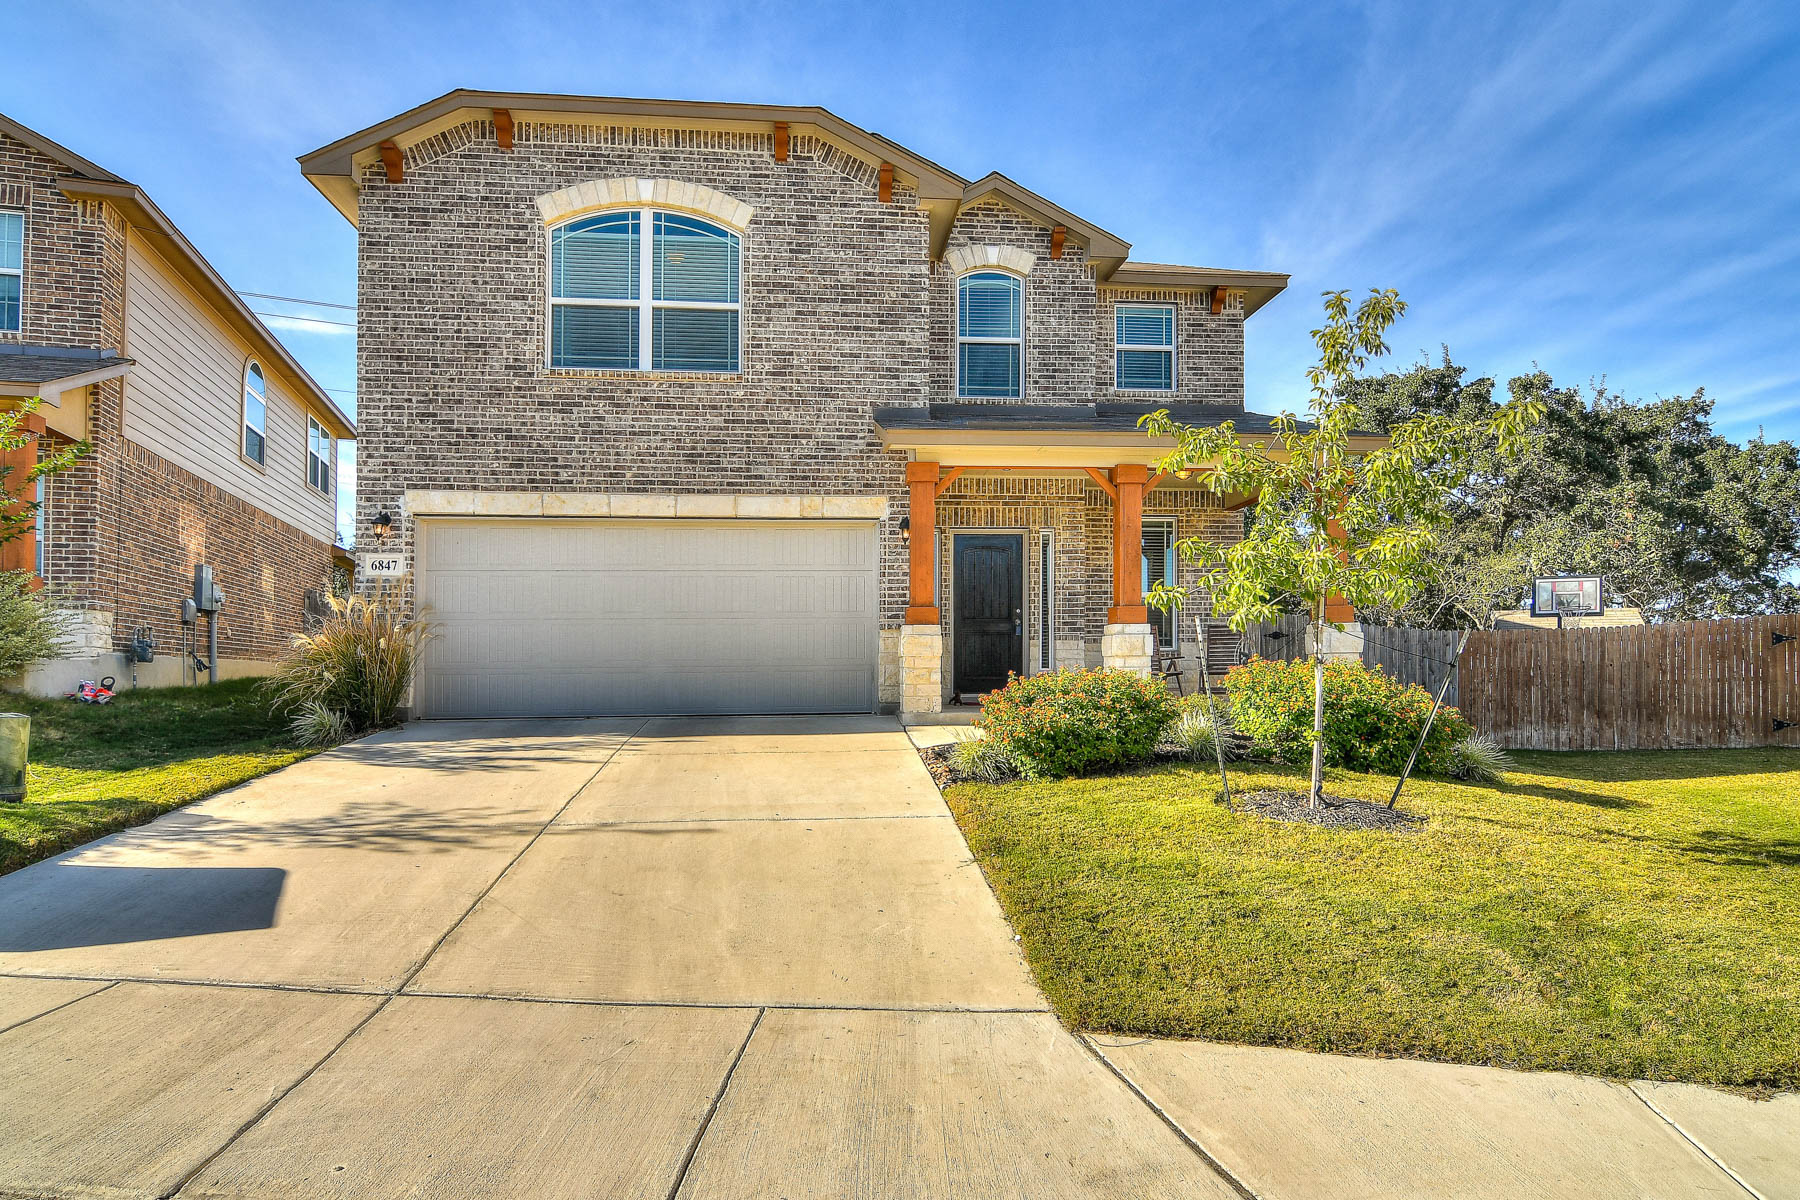 Single Family Home for Sale at Beautiful home in Alamo Ranch/Riverstone 6847 Briscoe Mill San Antonio, Texas 78253 United States